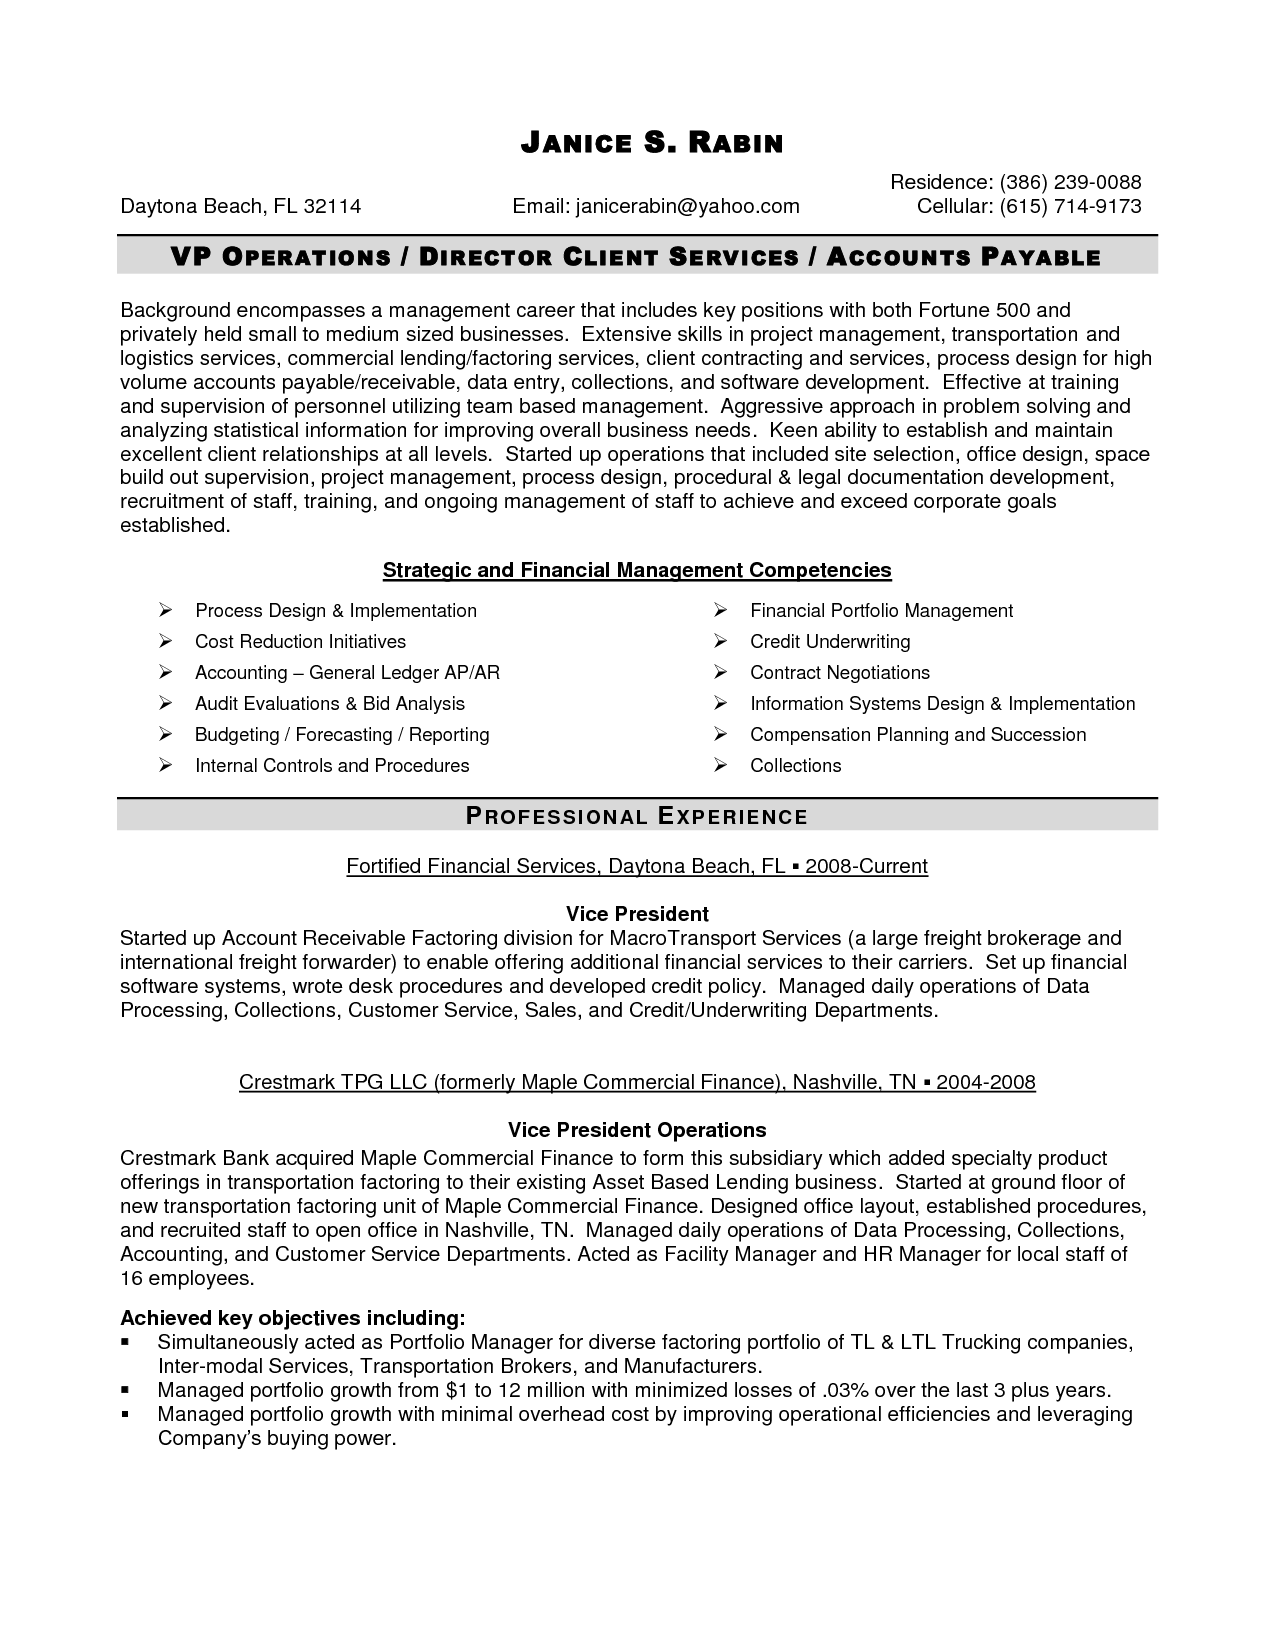 senior logistic management resume | Senior Logistics Finance Manager ...